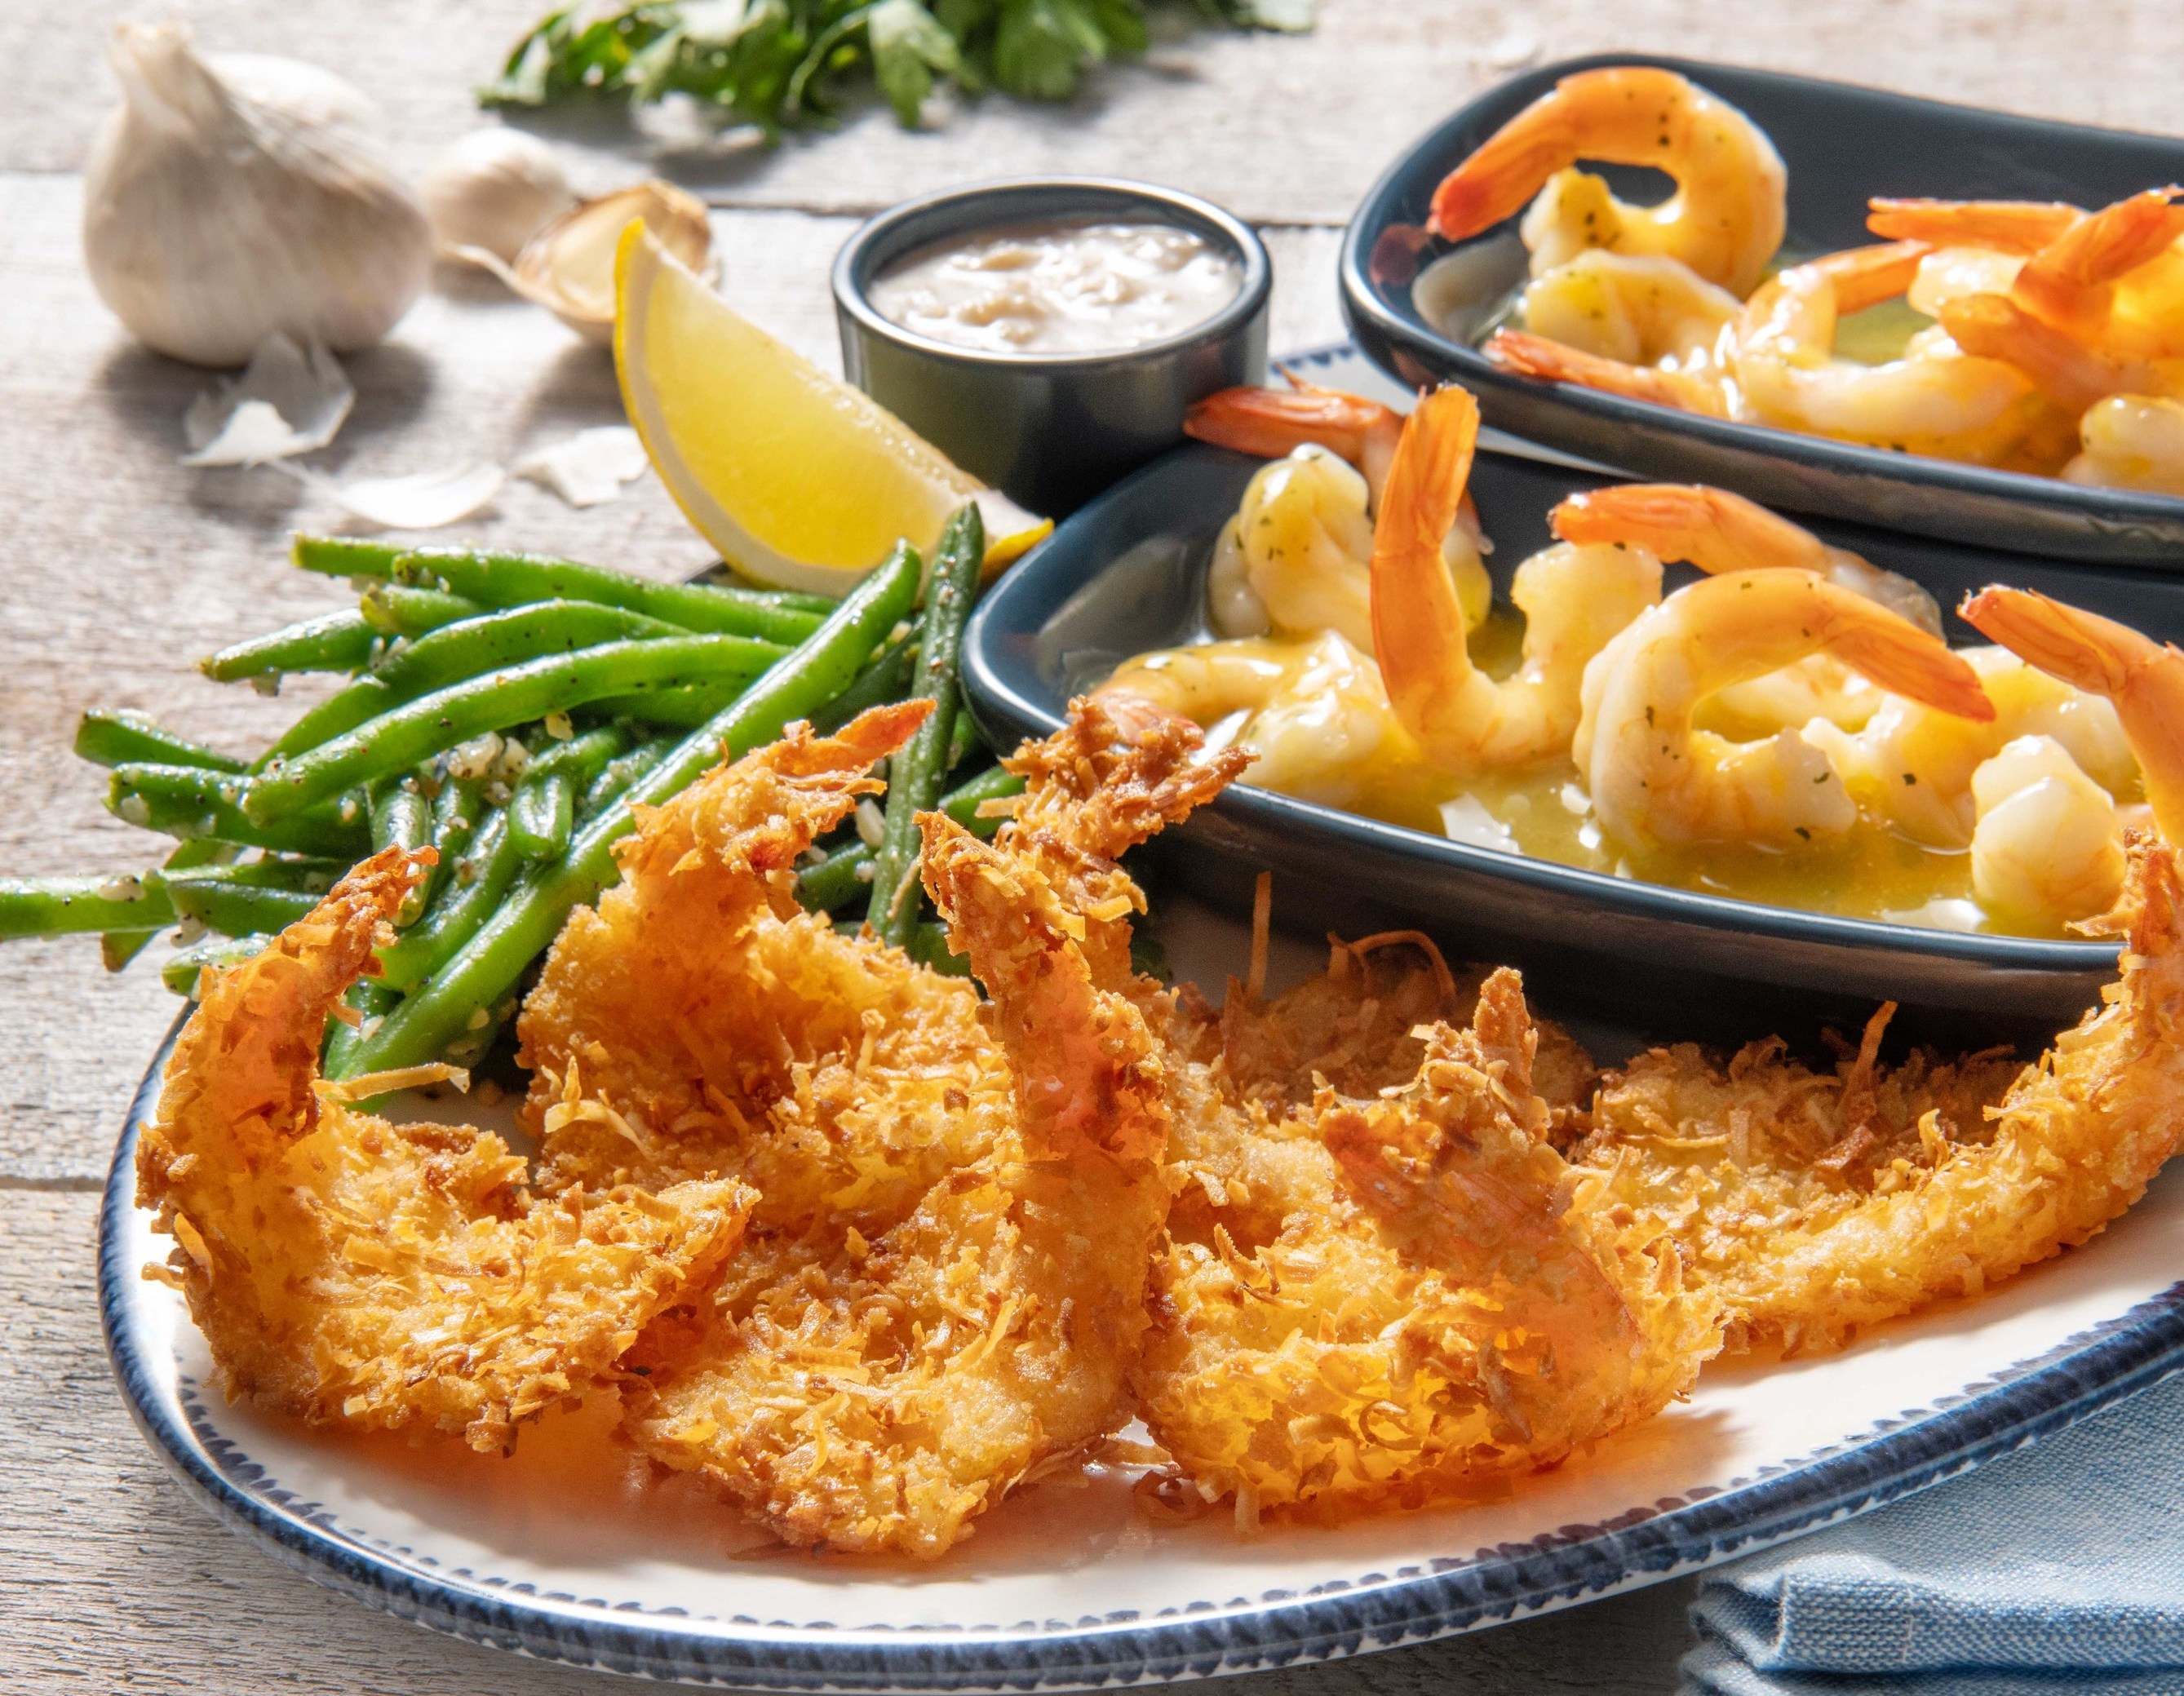 Red Lobster Launches New Daily Deals Including Endless Shrimp Monday Whole Lobster Wednesday Pennlive Com